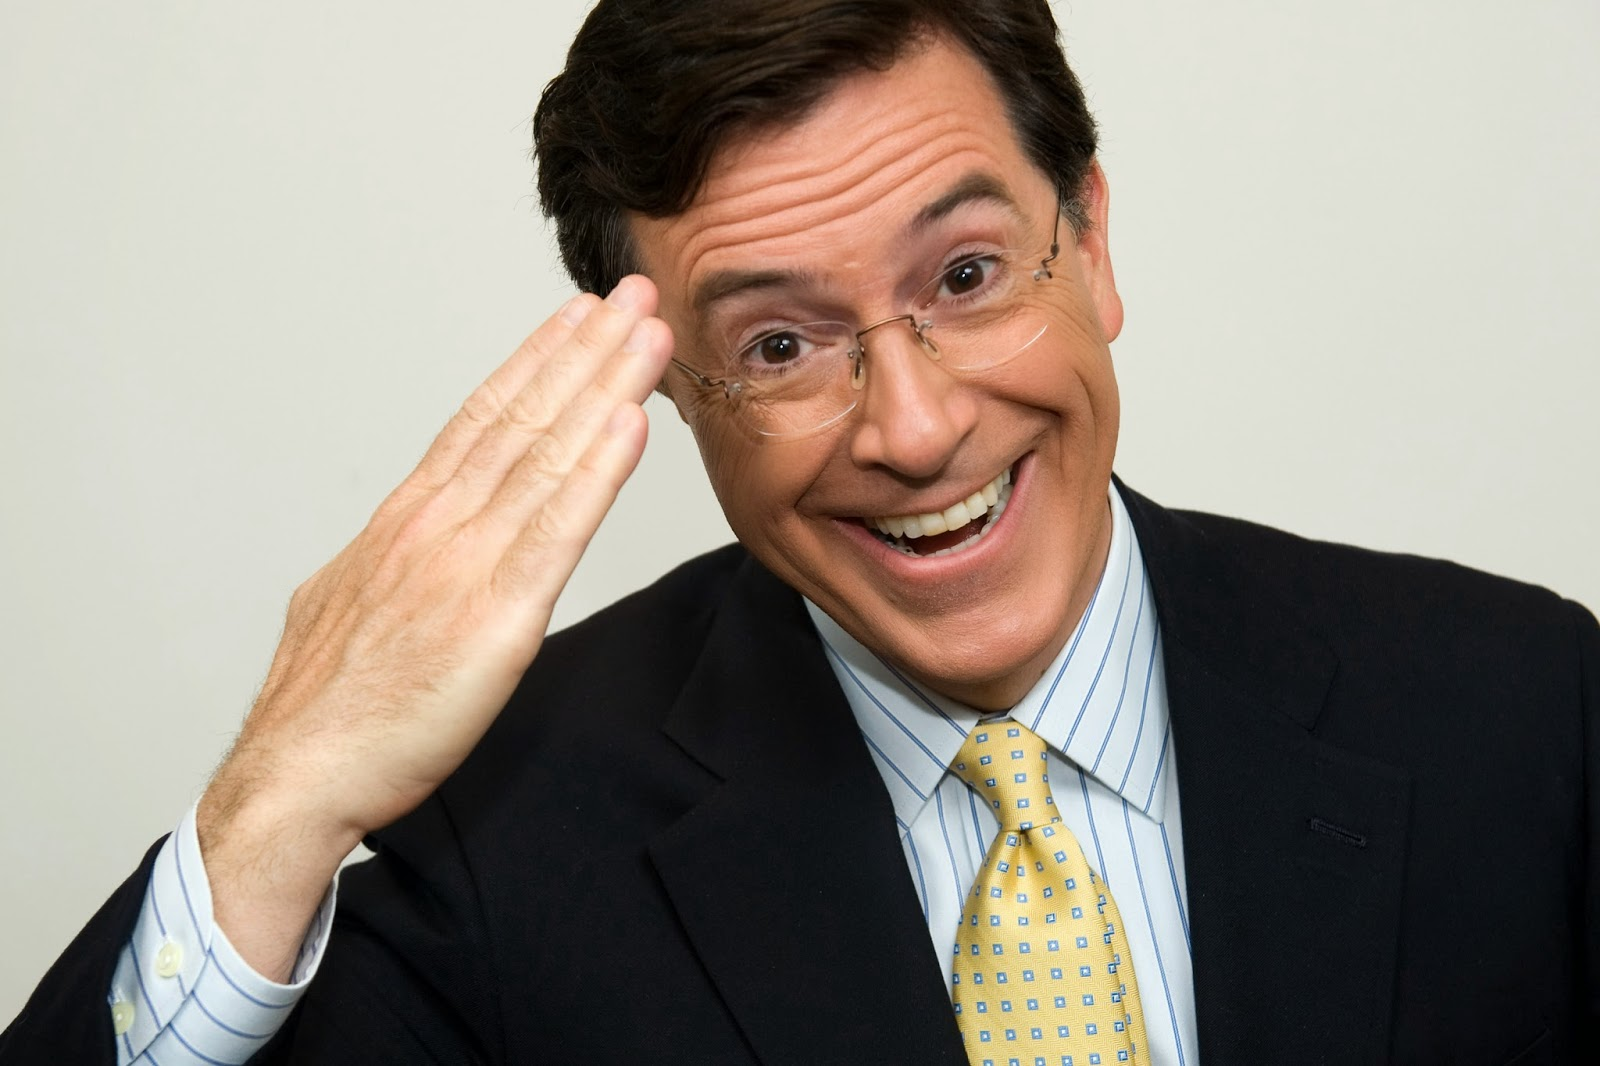 Stephen Colbert to replace David Letterman as The Late Show host on CBS